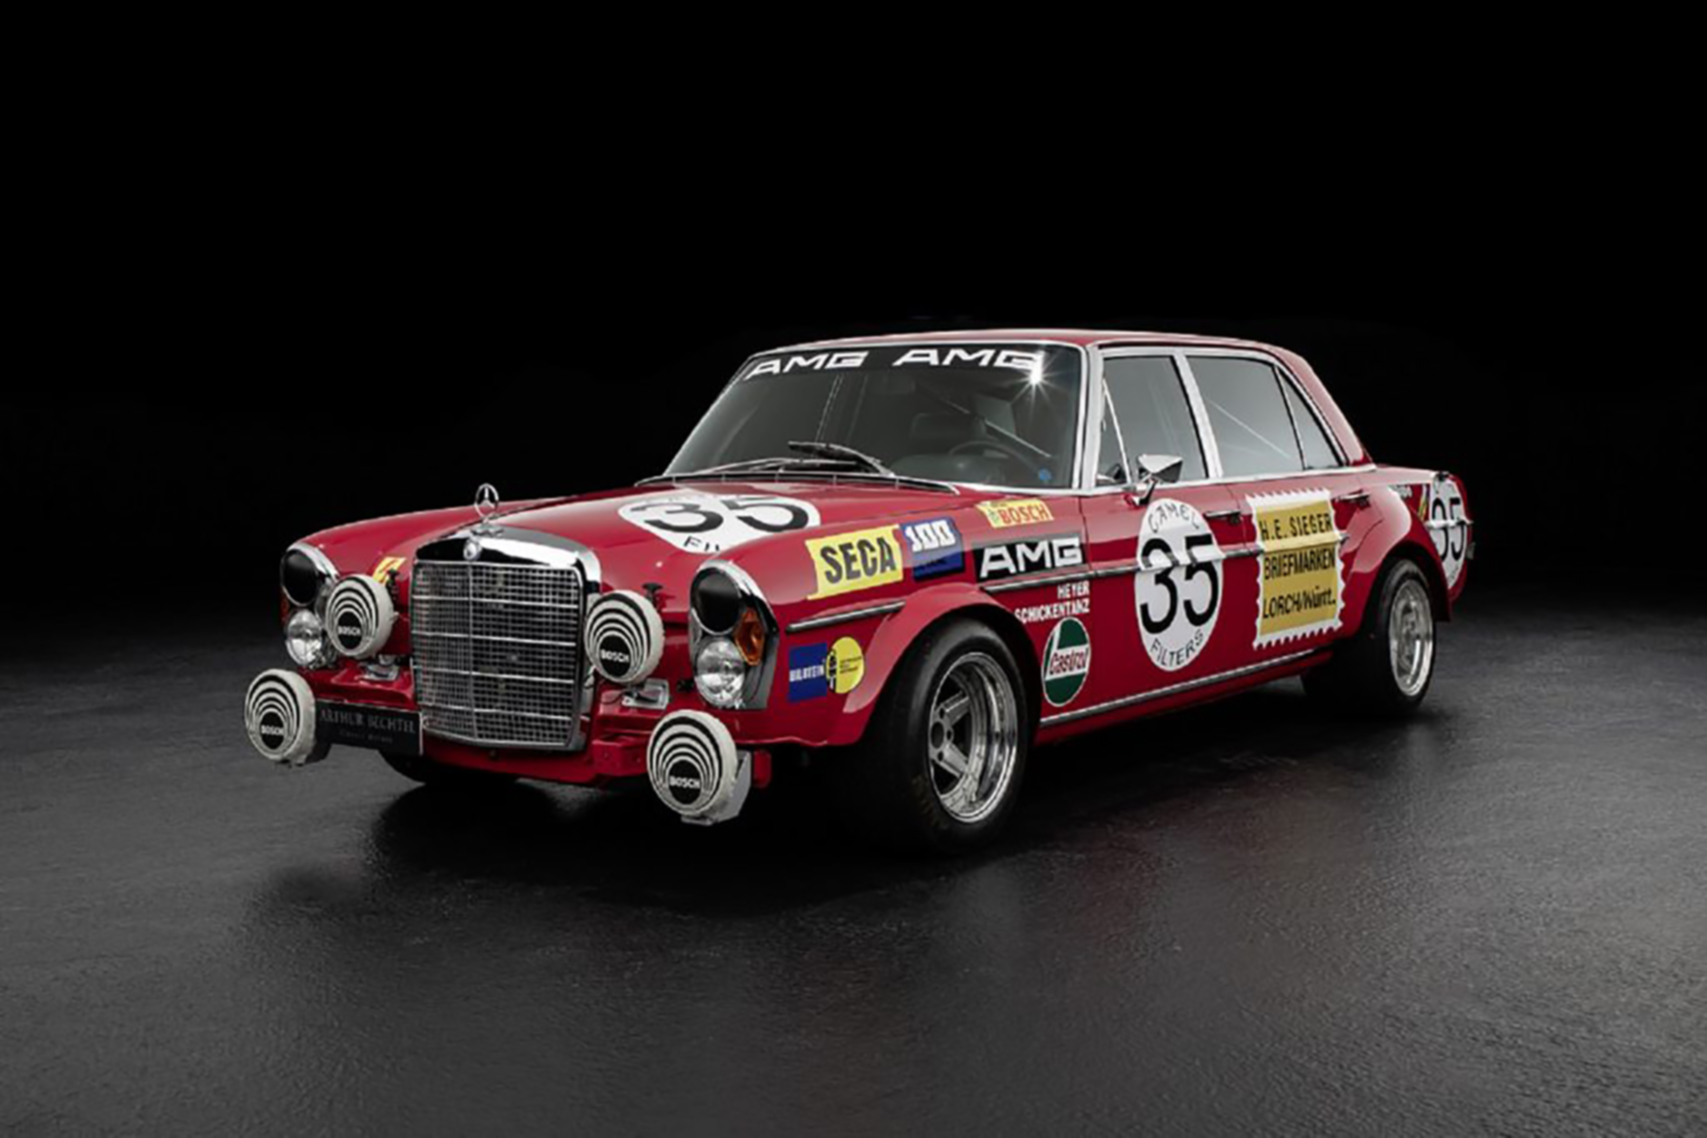 The Red Pig – Mercedes 300 SEL 6.8 AMG